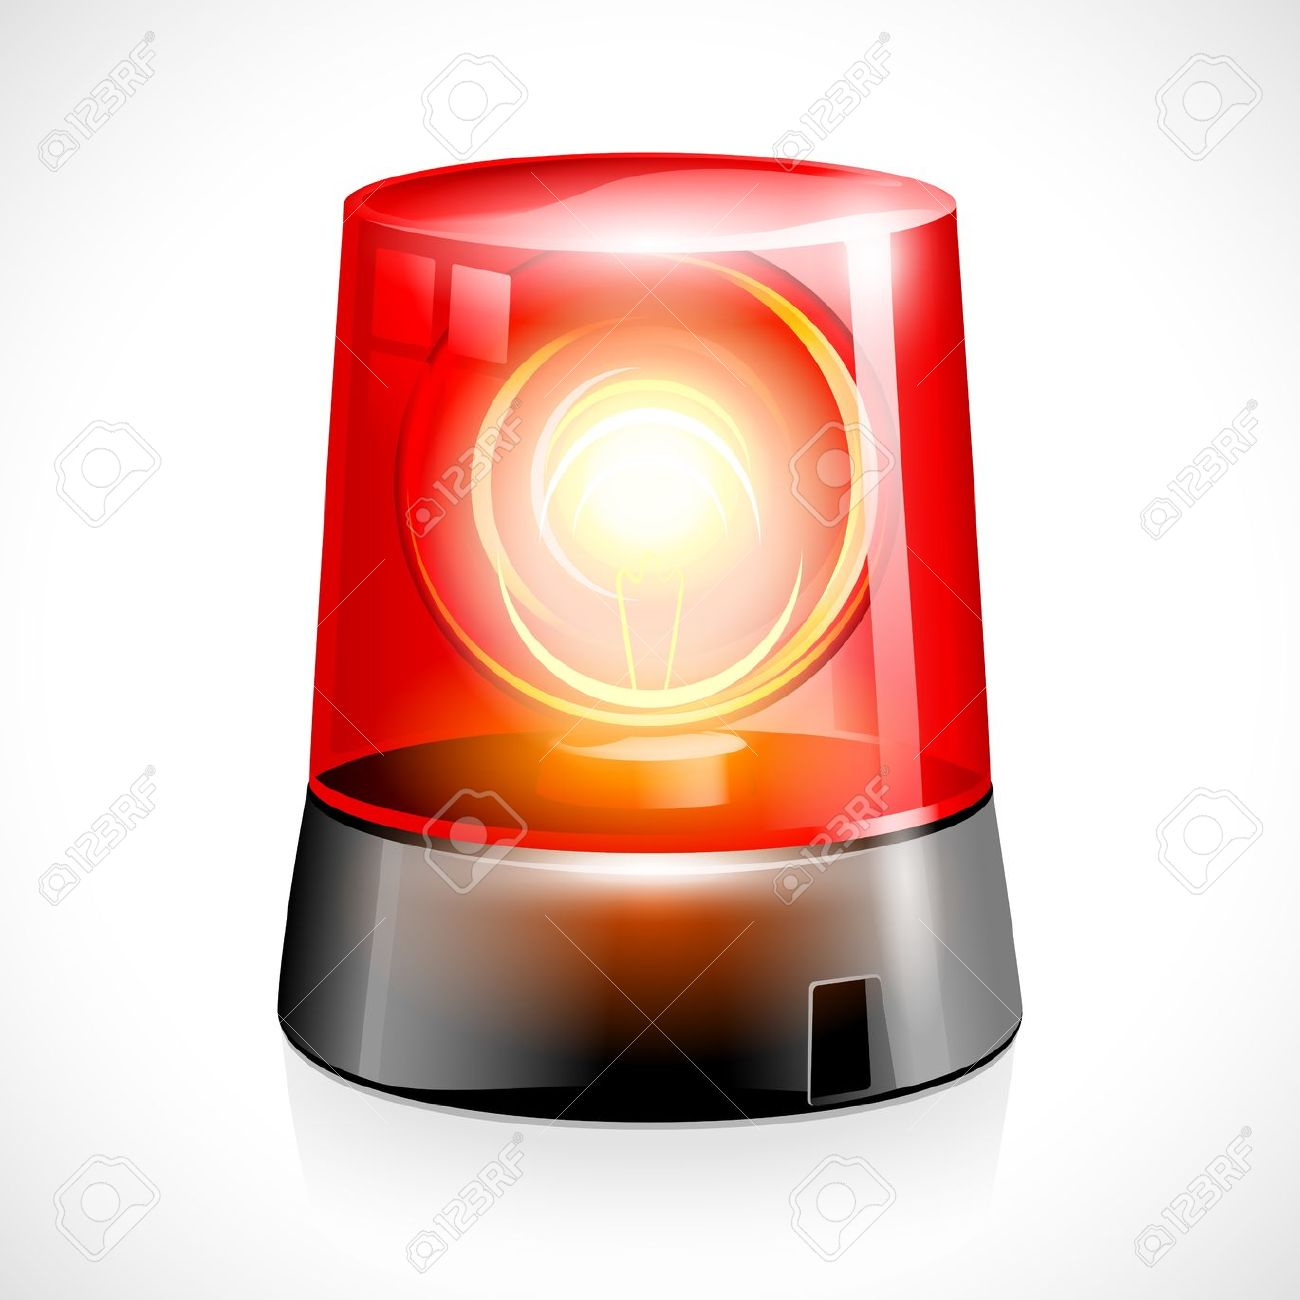 Warning lamp clipart - Clipground